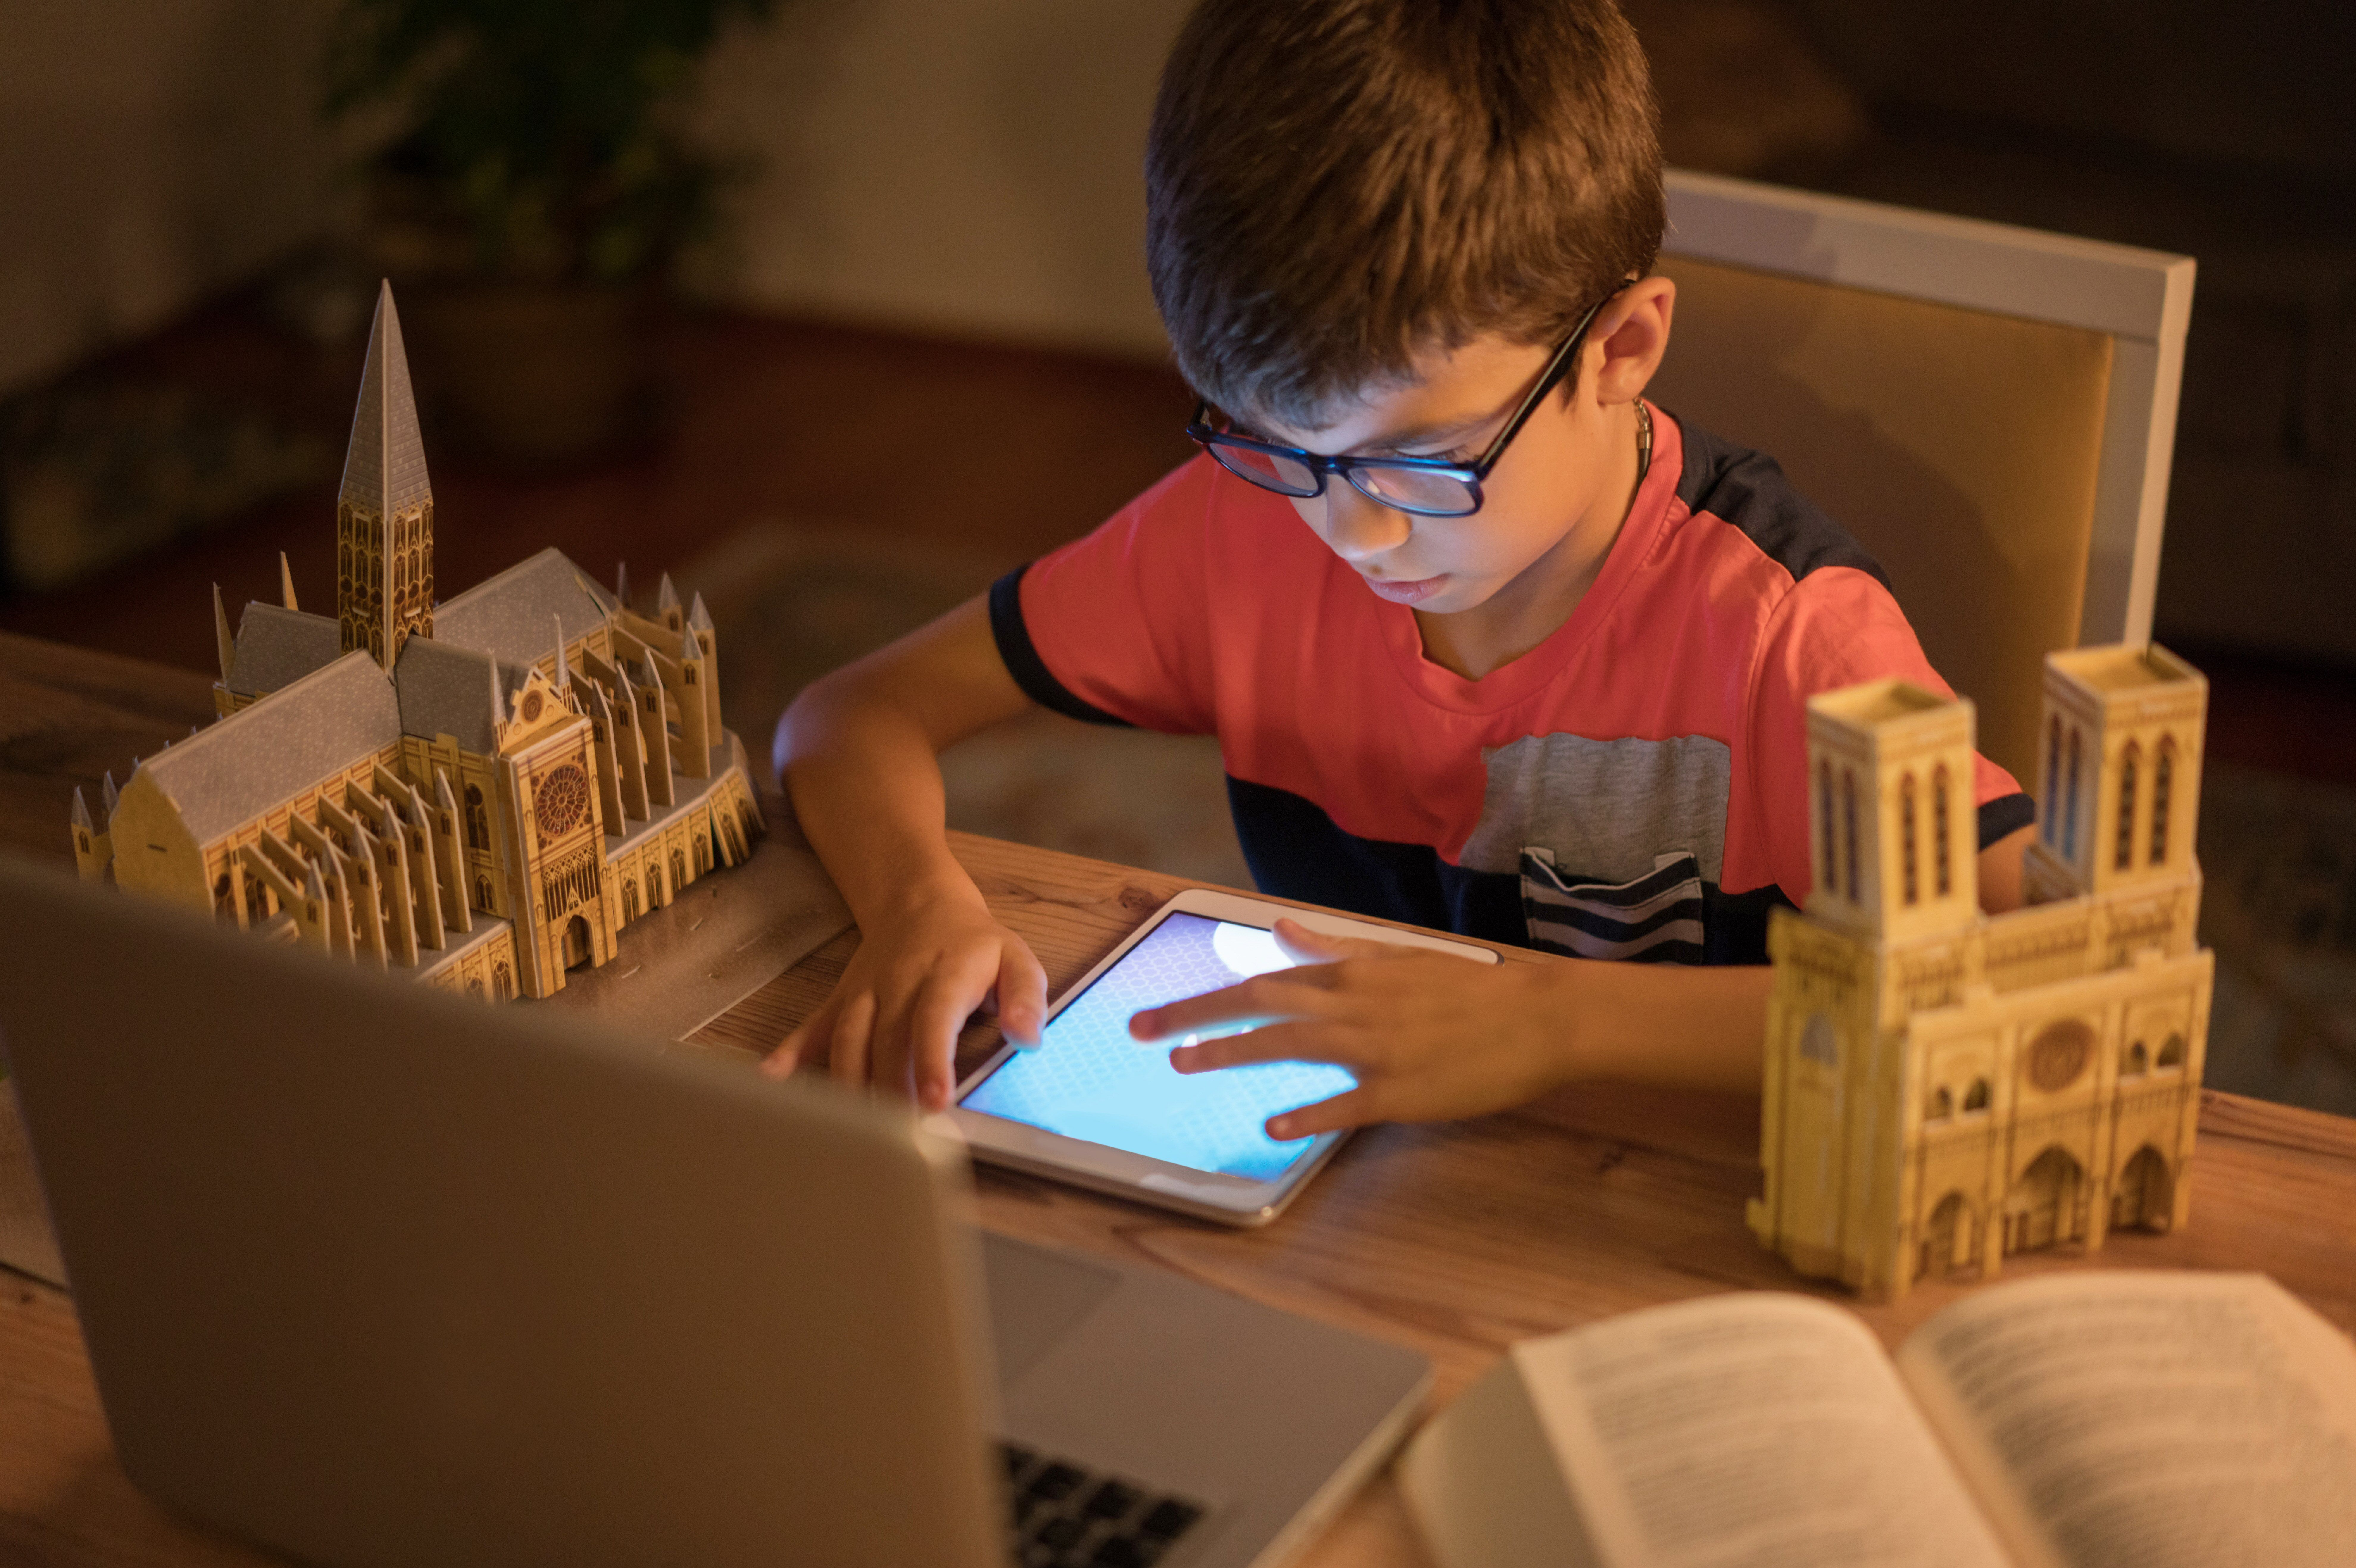 young boy with glasses sitting at table with tablet surrounded by models of buildings